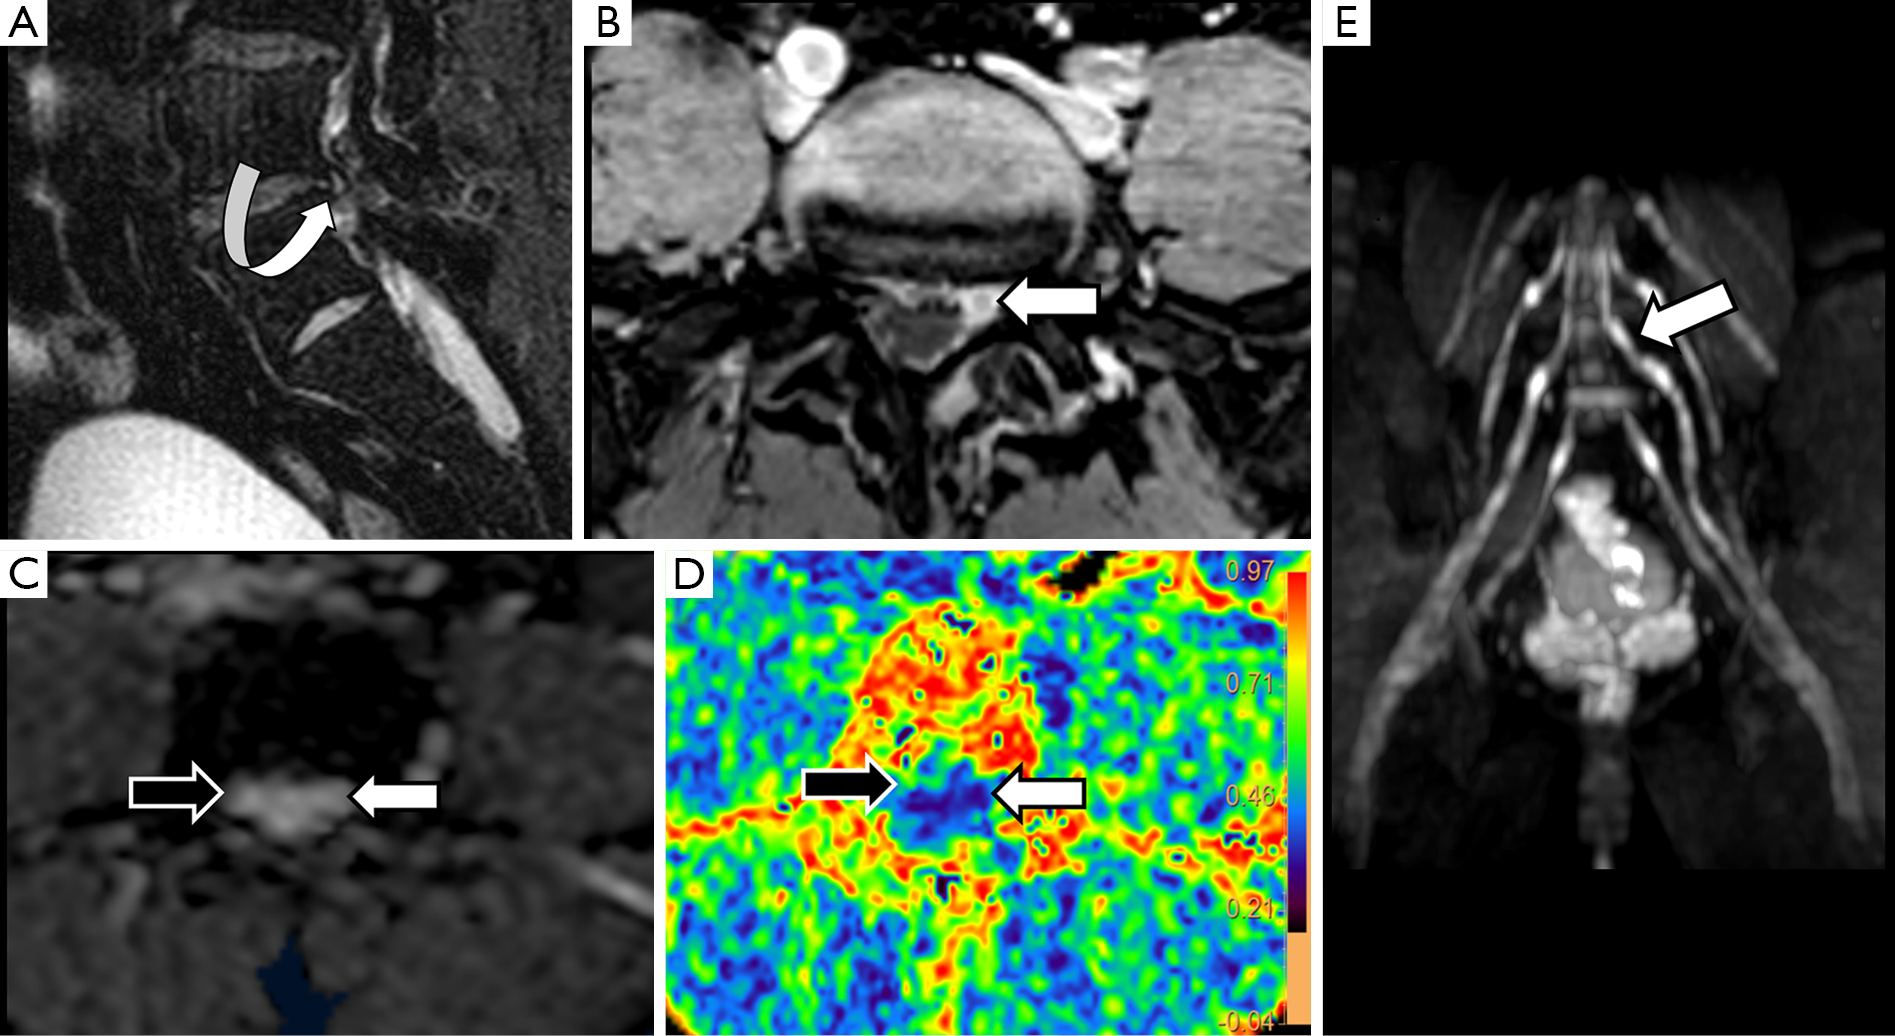 Quantitative magnetic resonance (MR) neurography for evaluation of